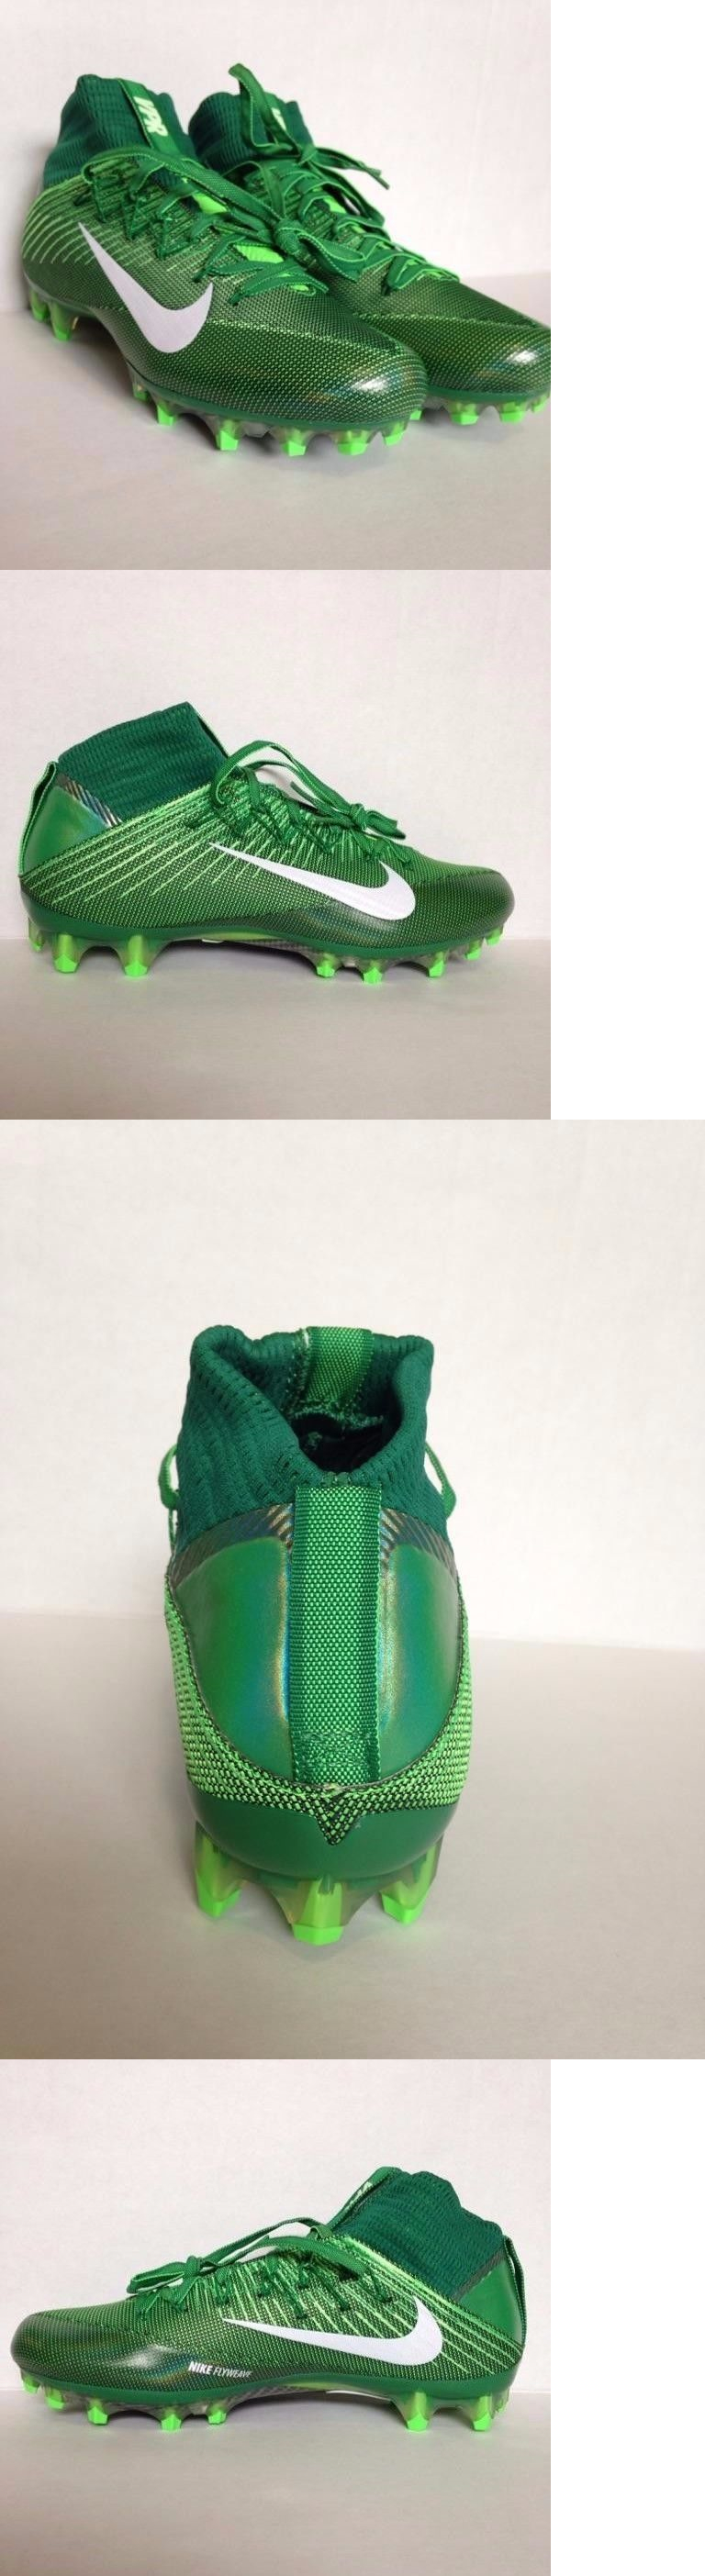 Men 159116: Nike Vapor Untouchable 2 Football Cleats Green White New  824470-313 Size